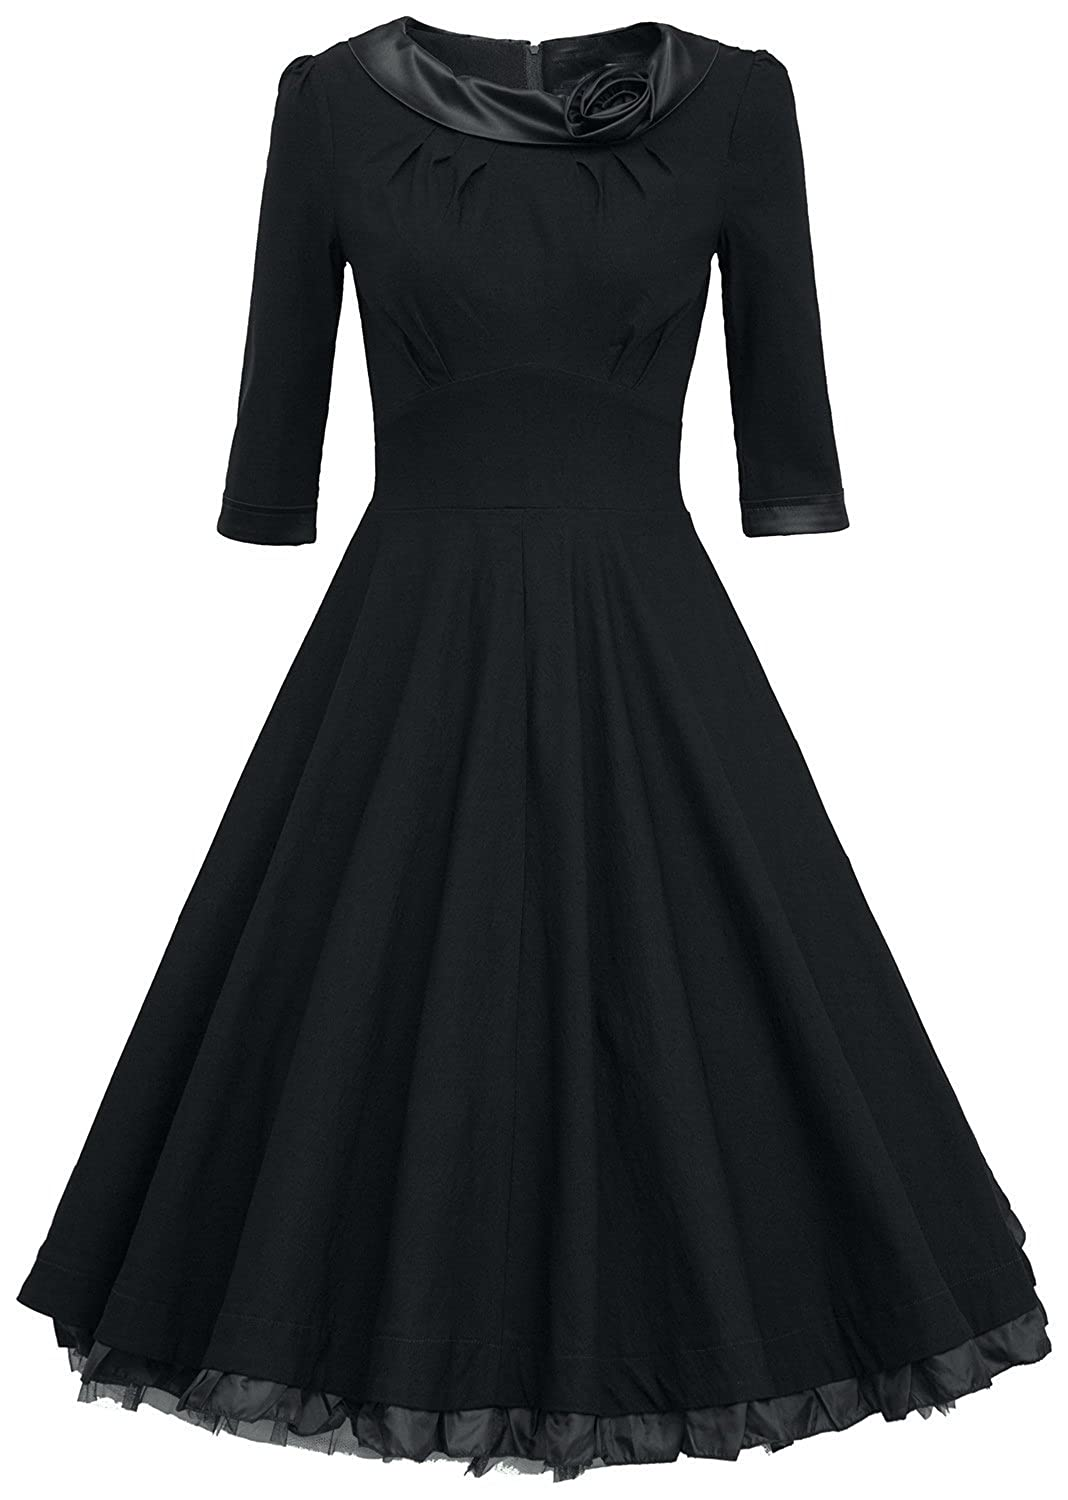 SMITHROAD Retro Flounced 3/4 Sleeve Rockabilly kleid 50er Jahre Swing Abend Cocktail